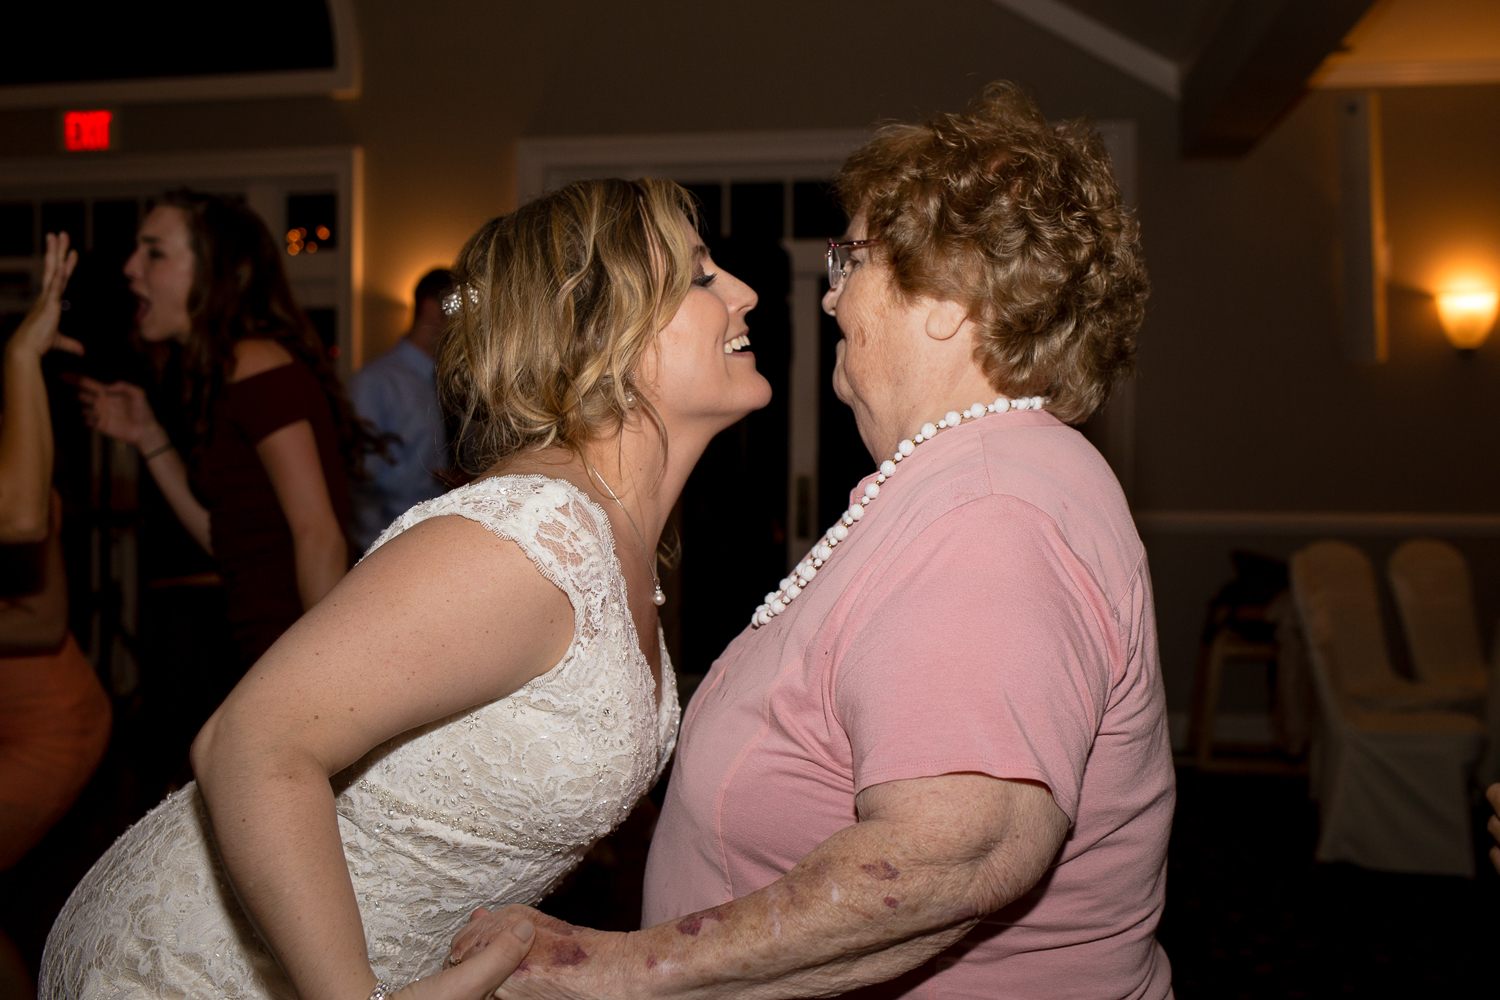 Proof that my Nana was at the very least able to dance half a song in September 2017 with the bride, her granddaughter Stephany.